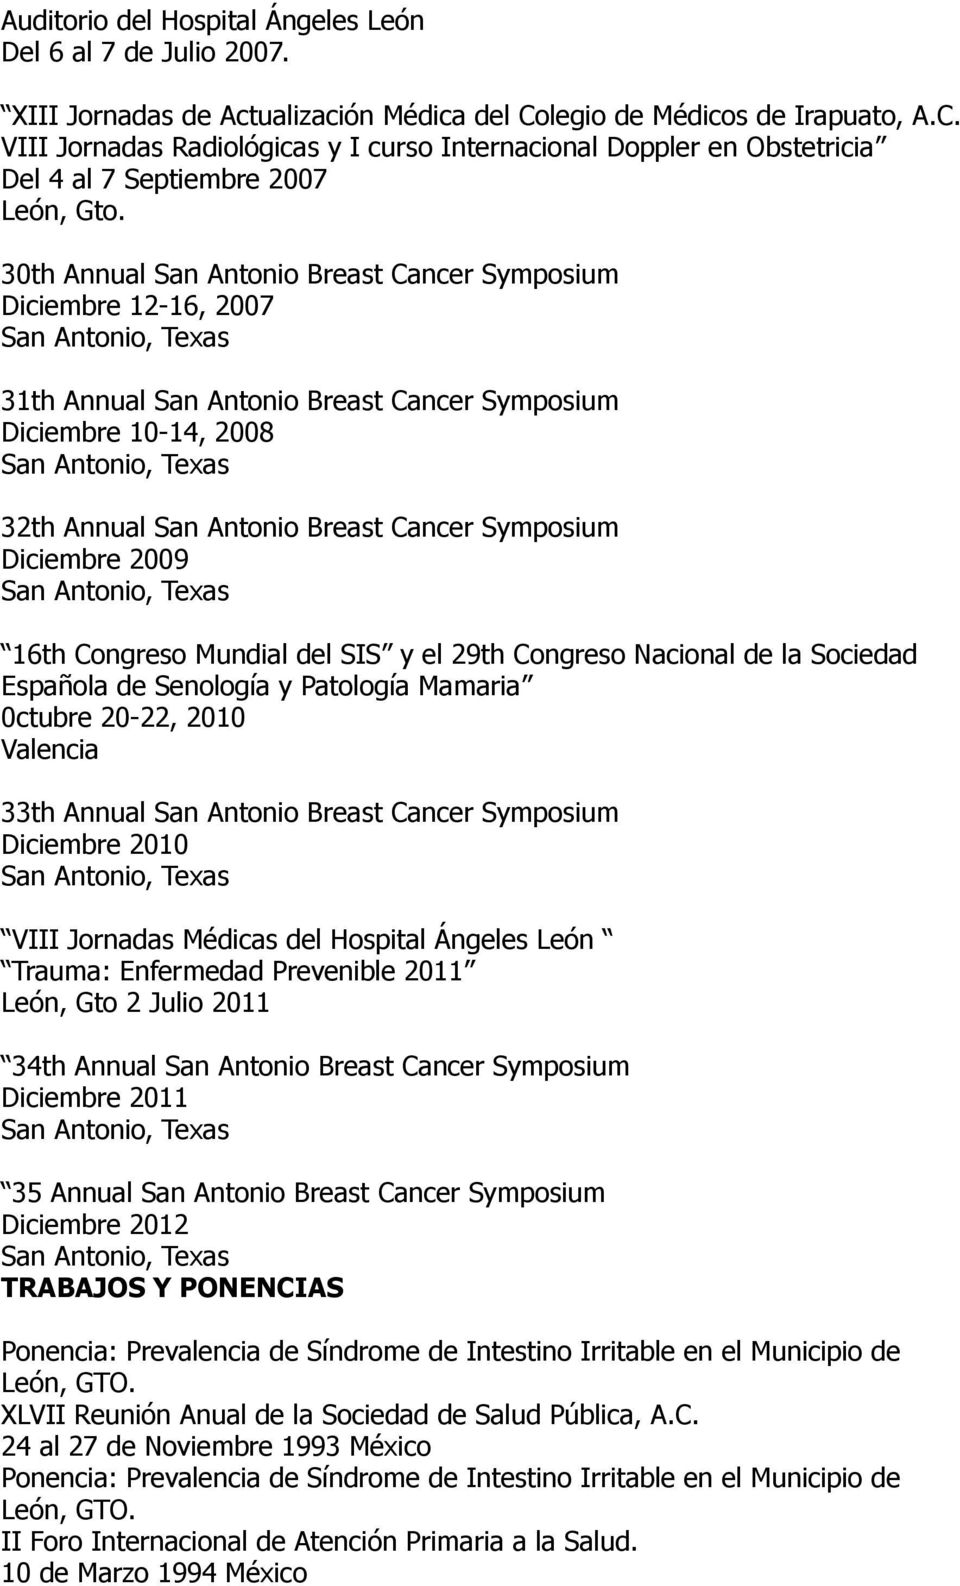 30th Annual San Antonio Breast Cancer Symposium Diciembre 12-16, 2007 31th Annual San Antonio Breast Cancer Symposium Diciembre 10-14, 2008 32th Annual San Antonio Breast Cancer Symposium Diciembre